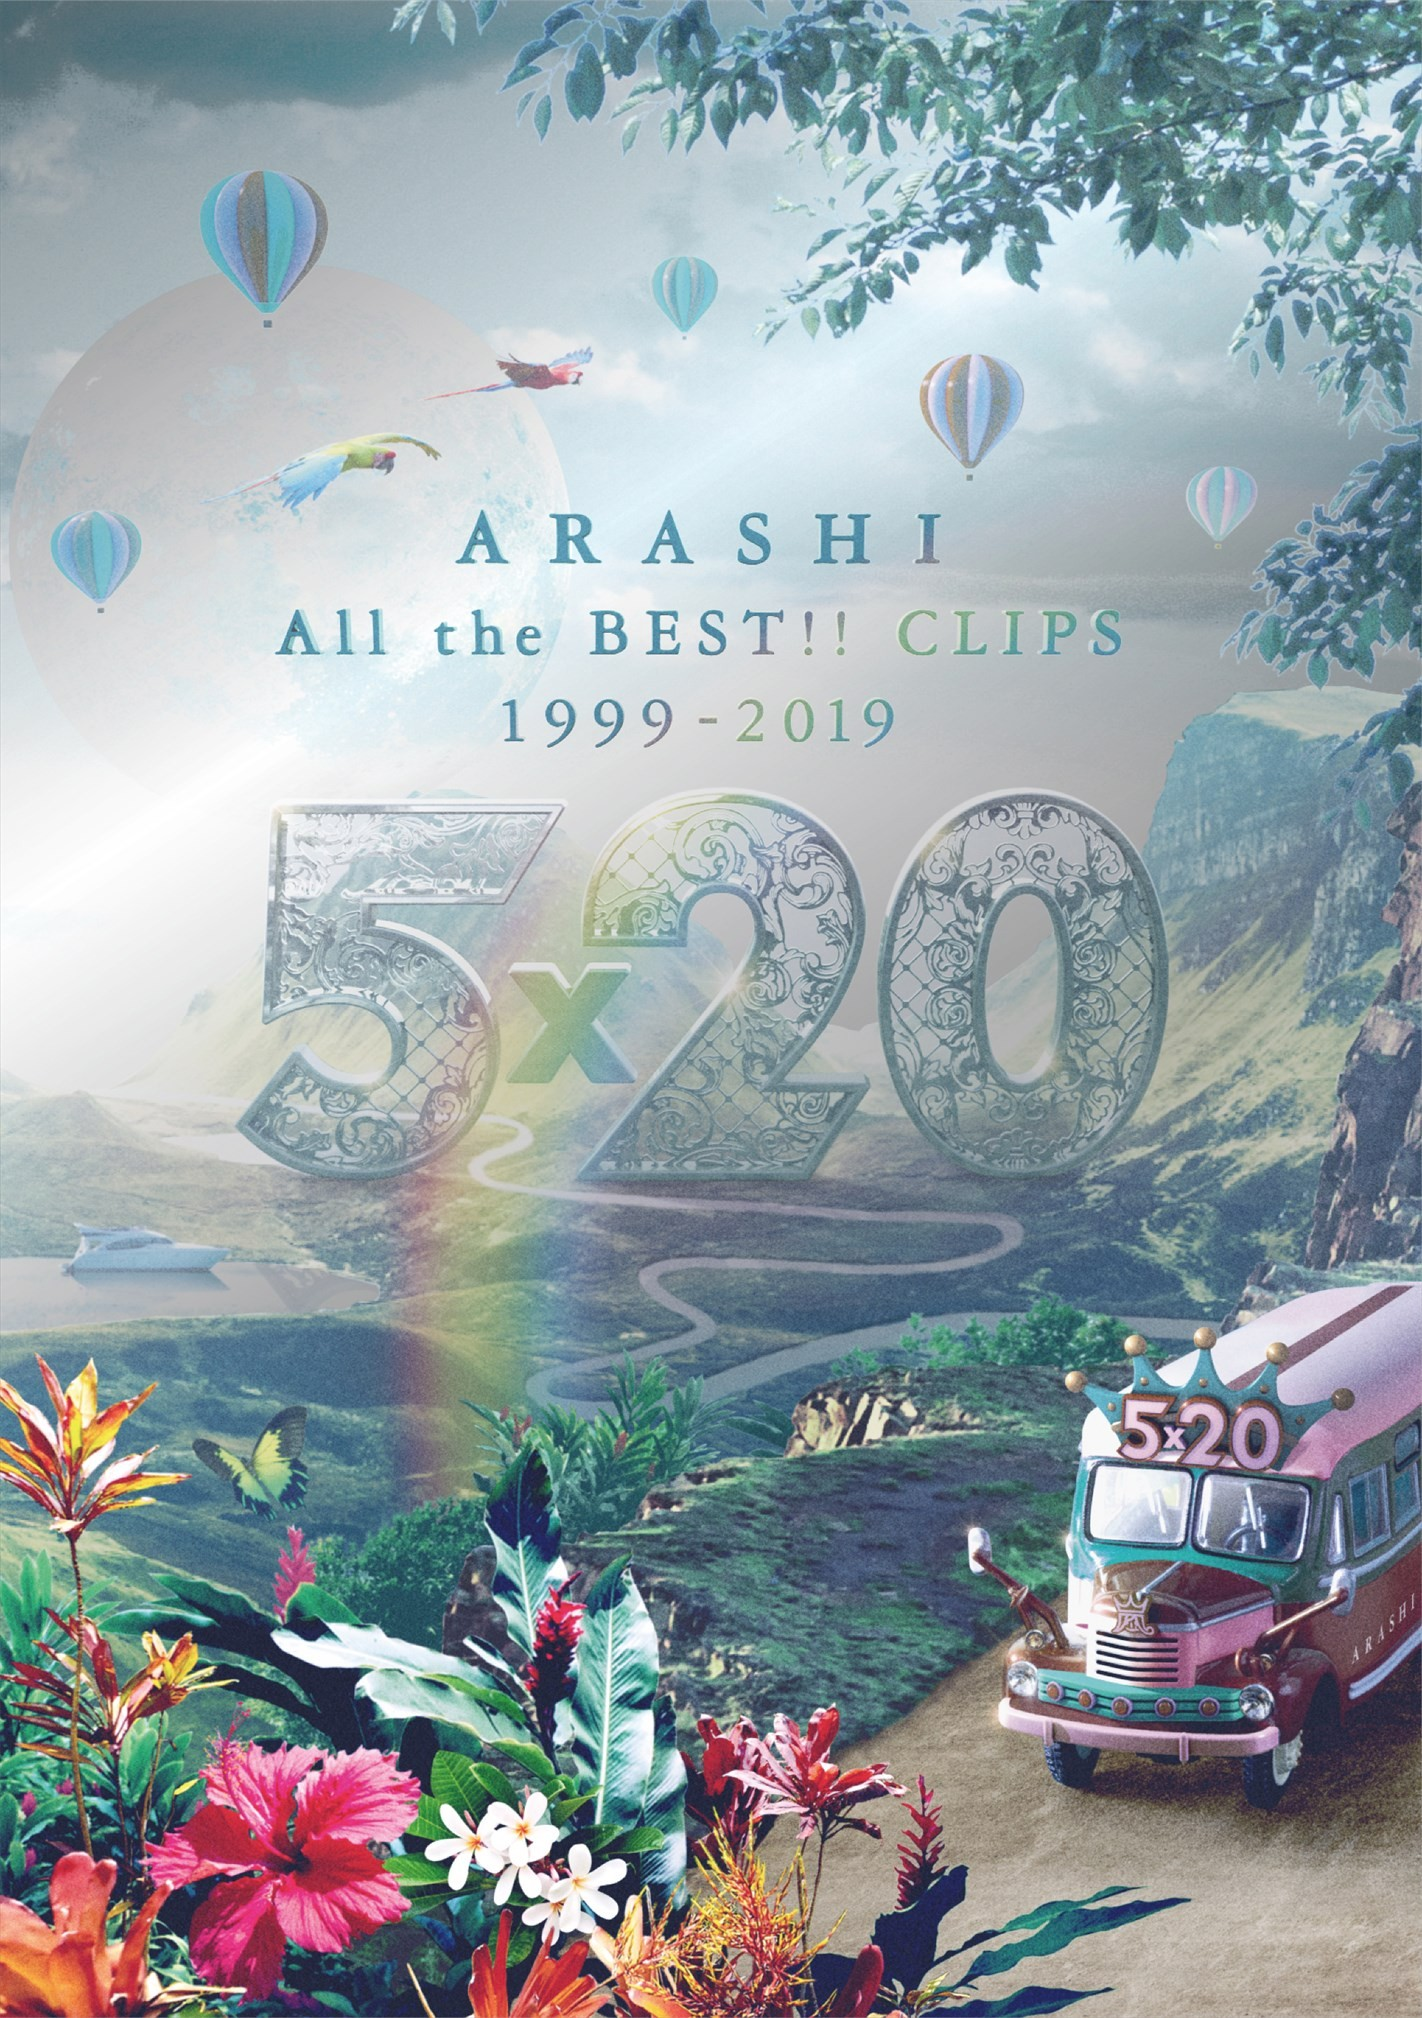 Arashi (嵐) – 5×20 All the BEST!! Clips 1999-2019 ([2019) [Blu-ray ISO]